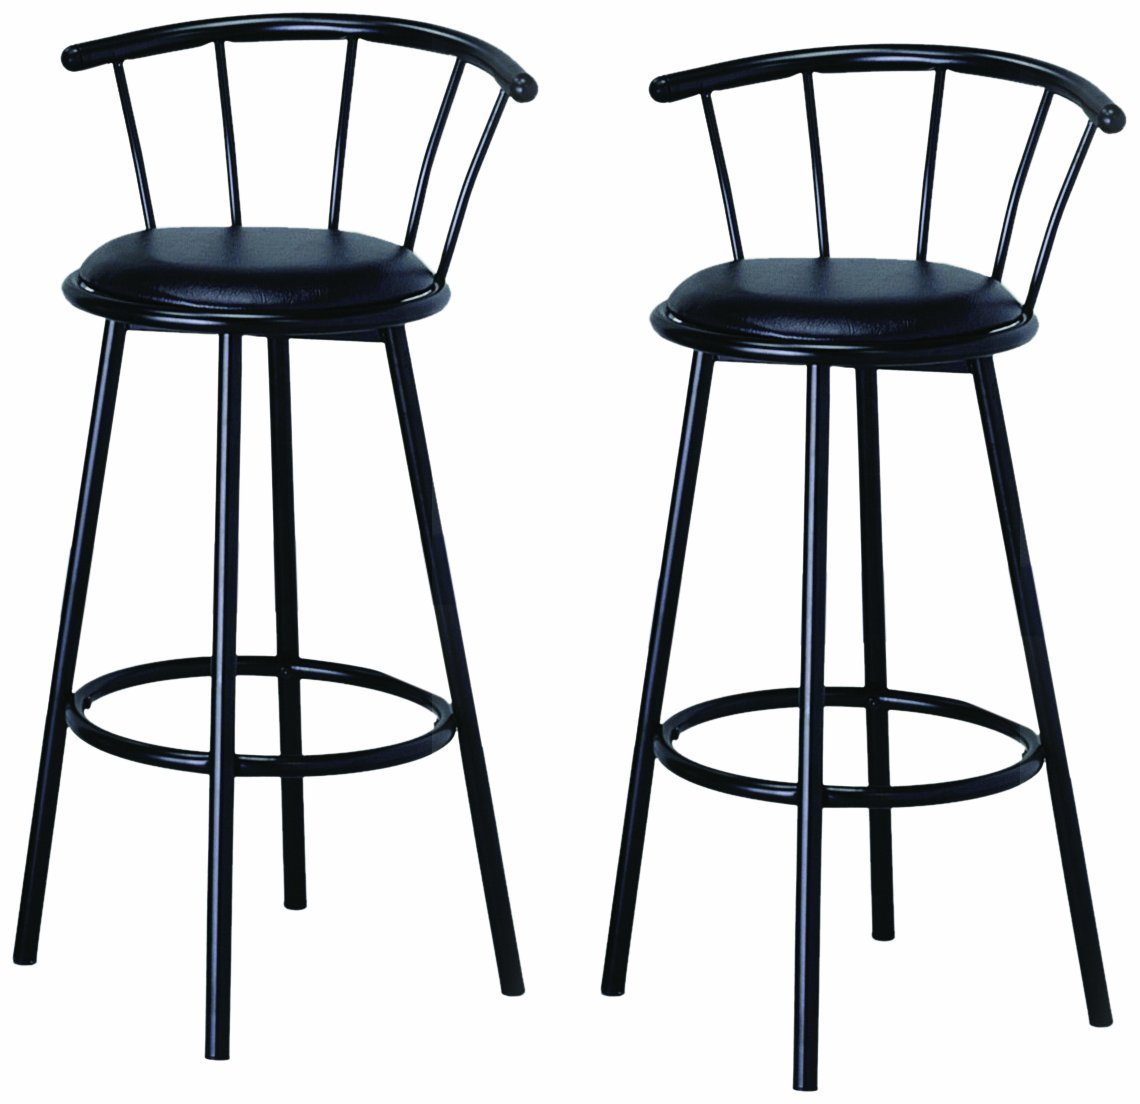 29 inch Black Finish Swivel Dining Bar Stool Chairs Set  : AM5001B from www.richbattery.com size 1140 x 1104 jpeg 97kB